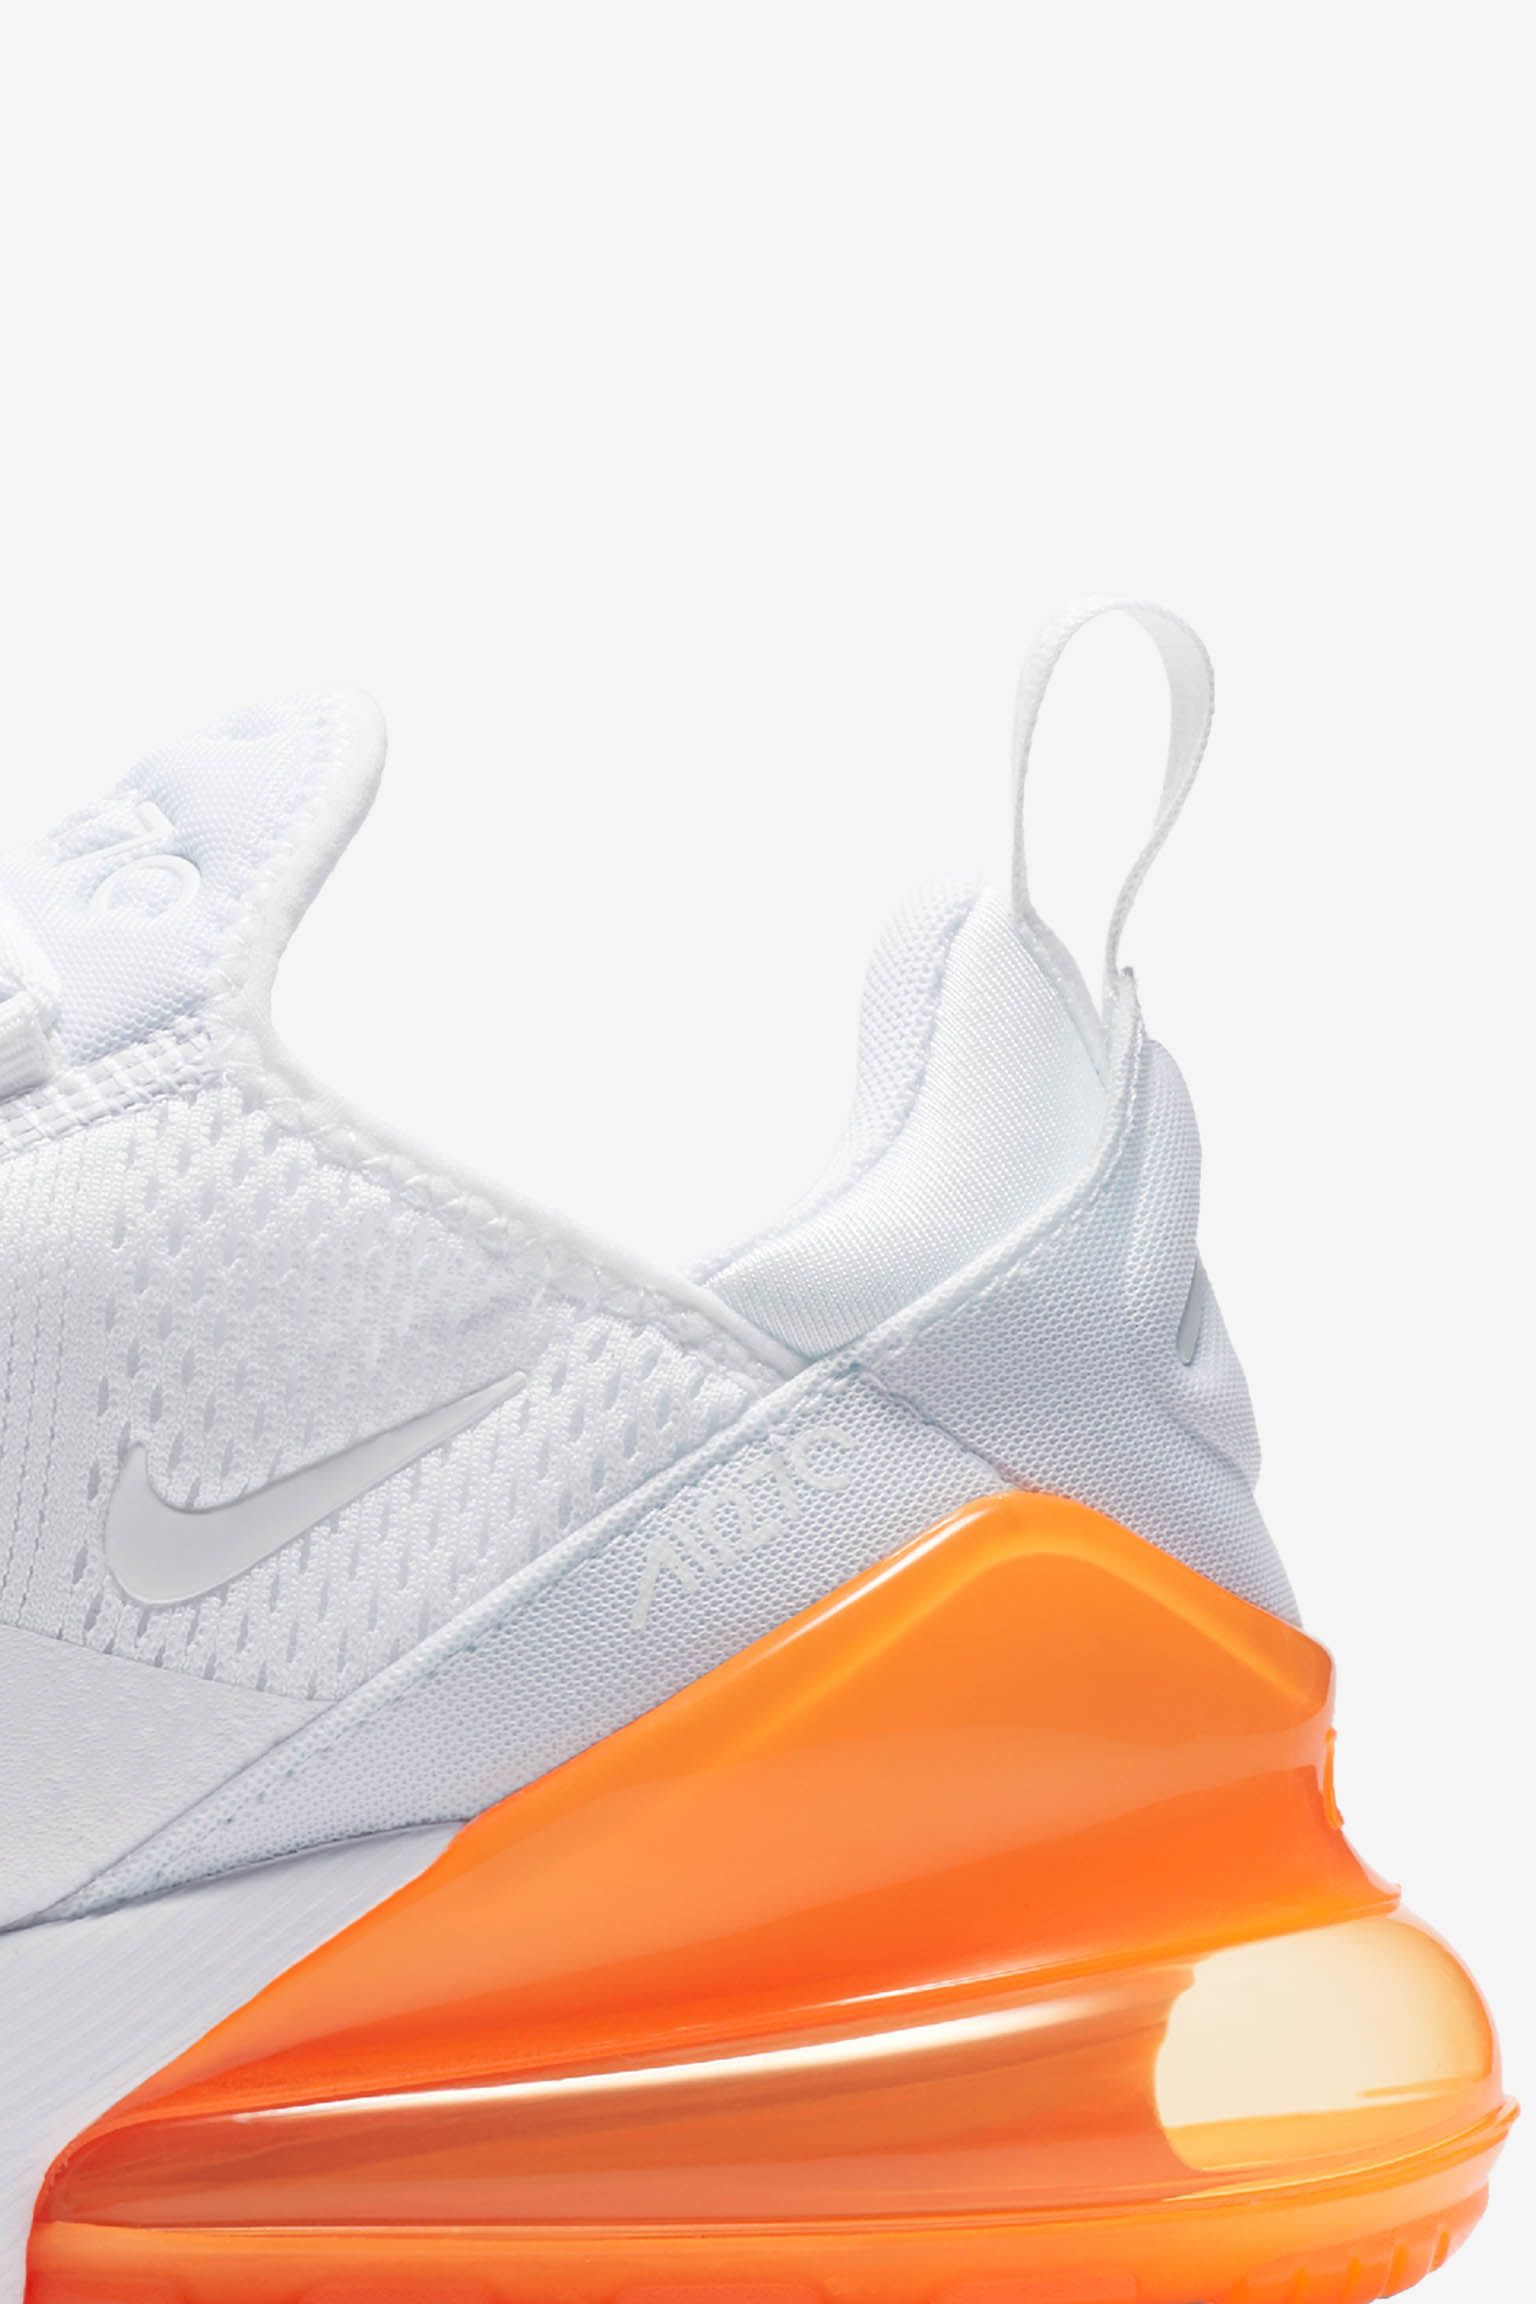 Nike Air Max 270 White Pack  Total Orange  Release Date. Nike⁠+ SNKRS a77991d3be7c